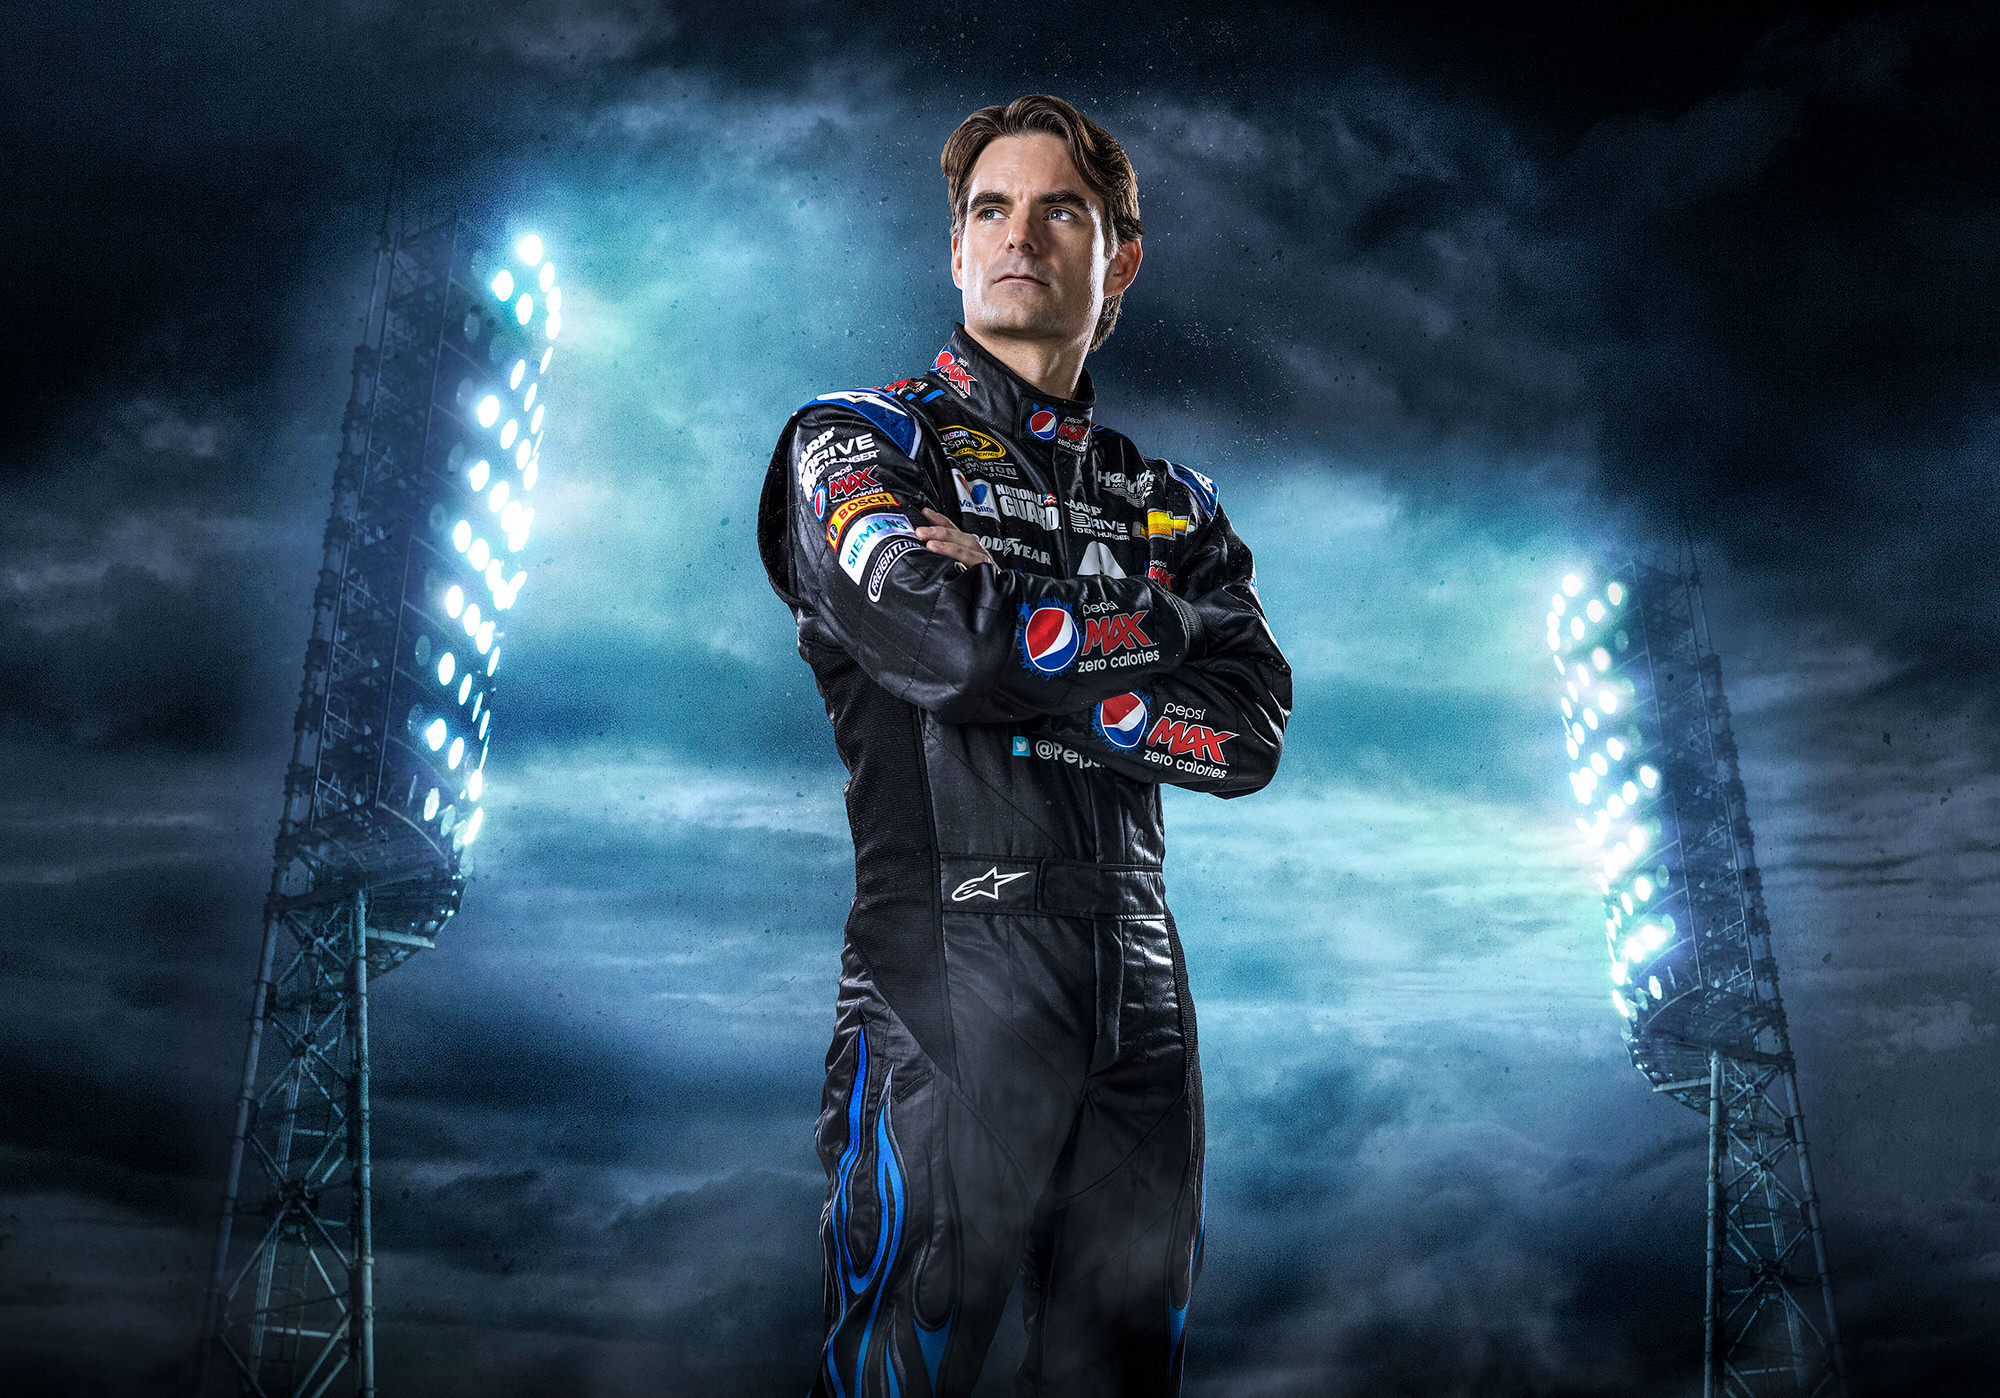 Jeff Gordon Pepsi Max NASCAR commercial portait photography